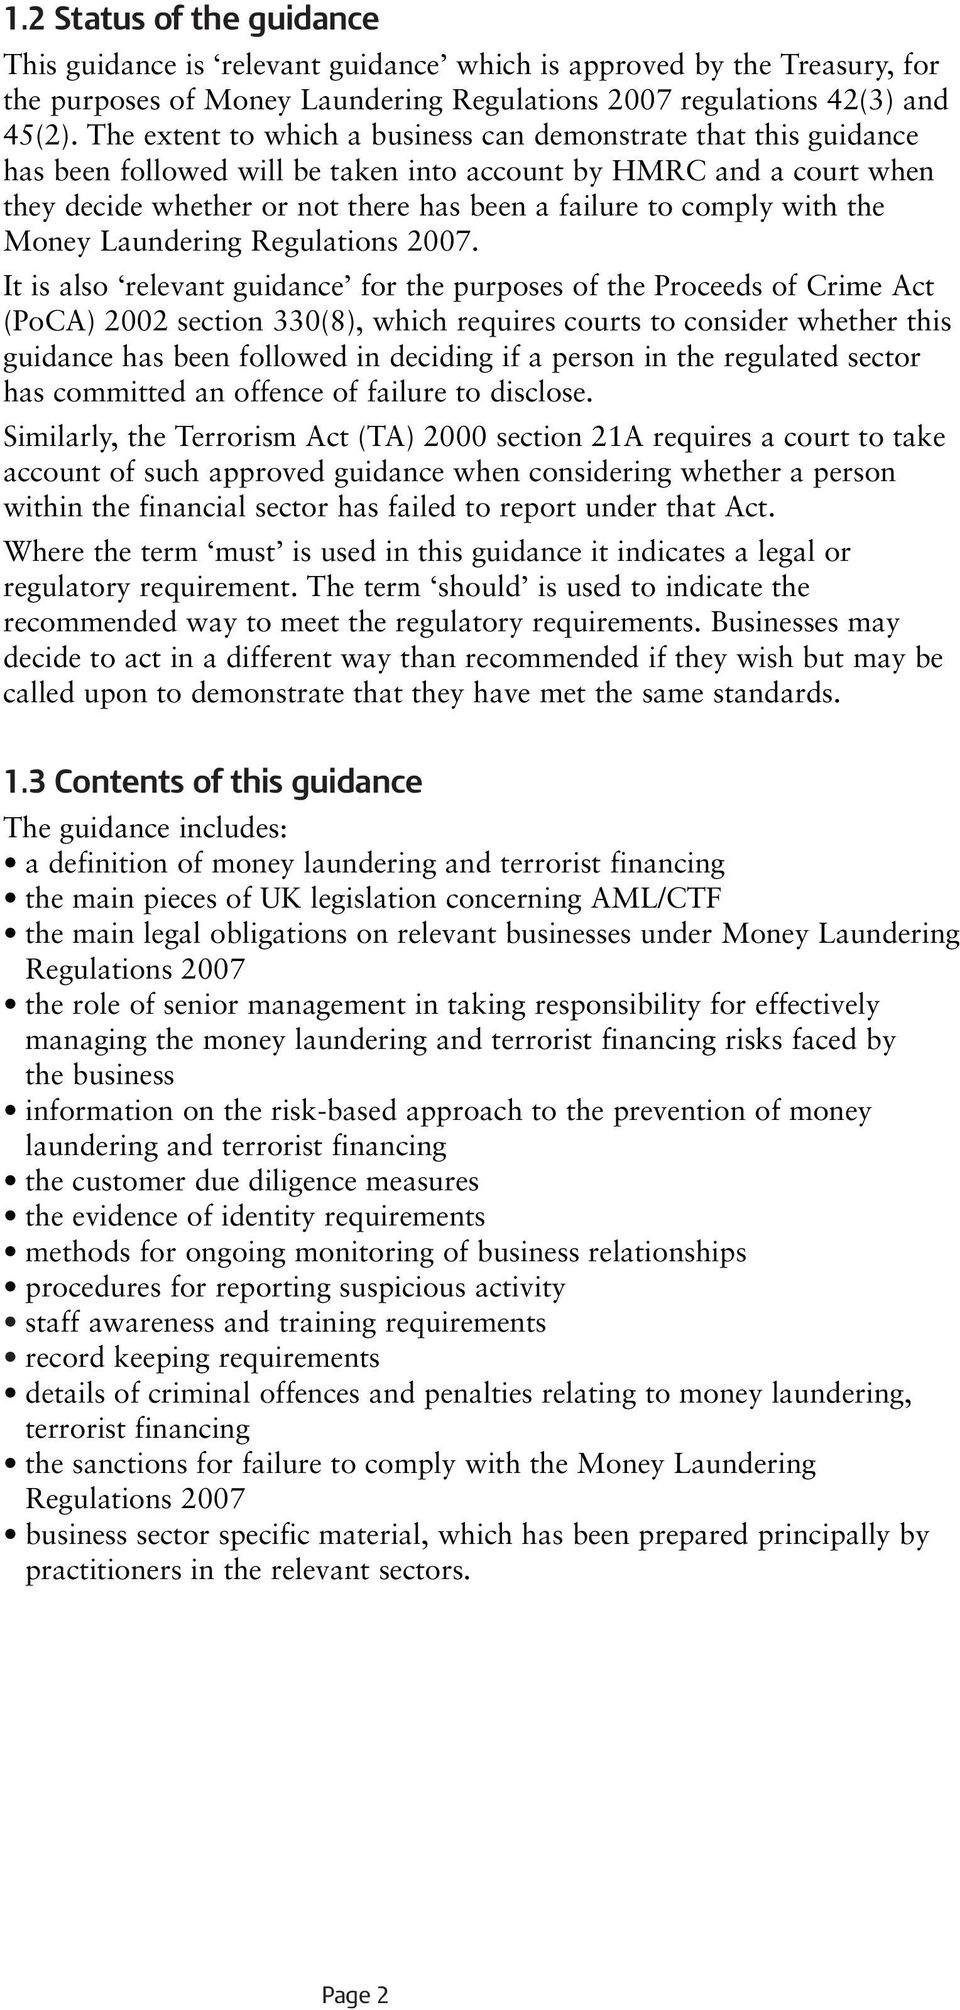 with the Money Laundering Regulations 2007.